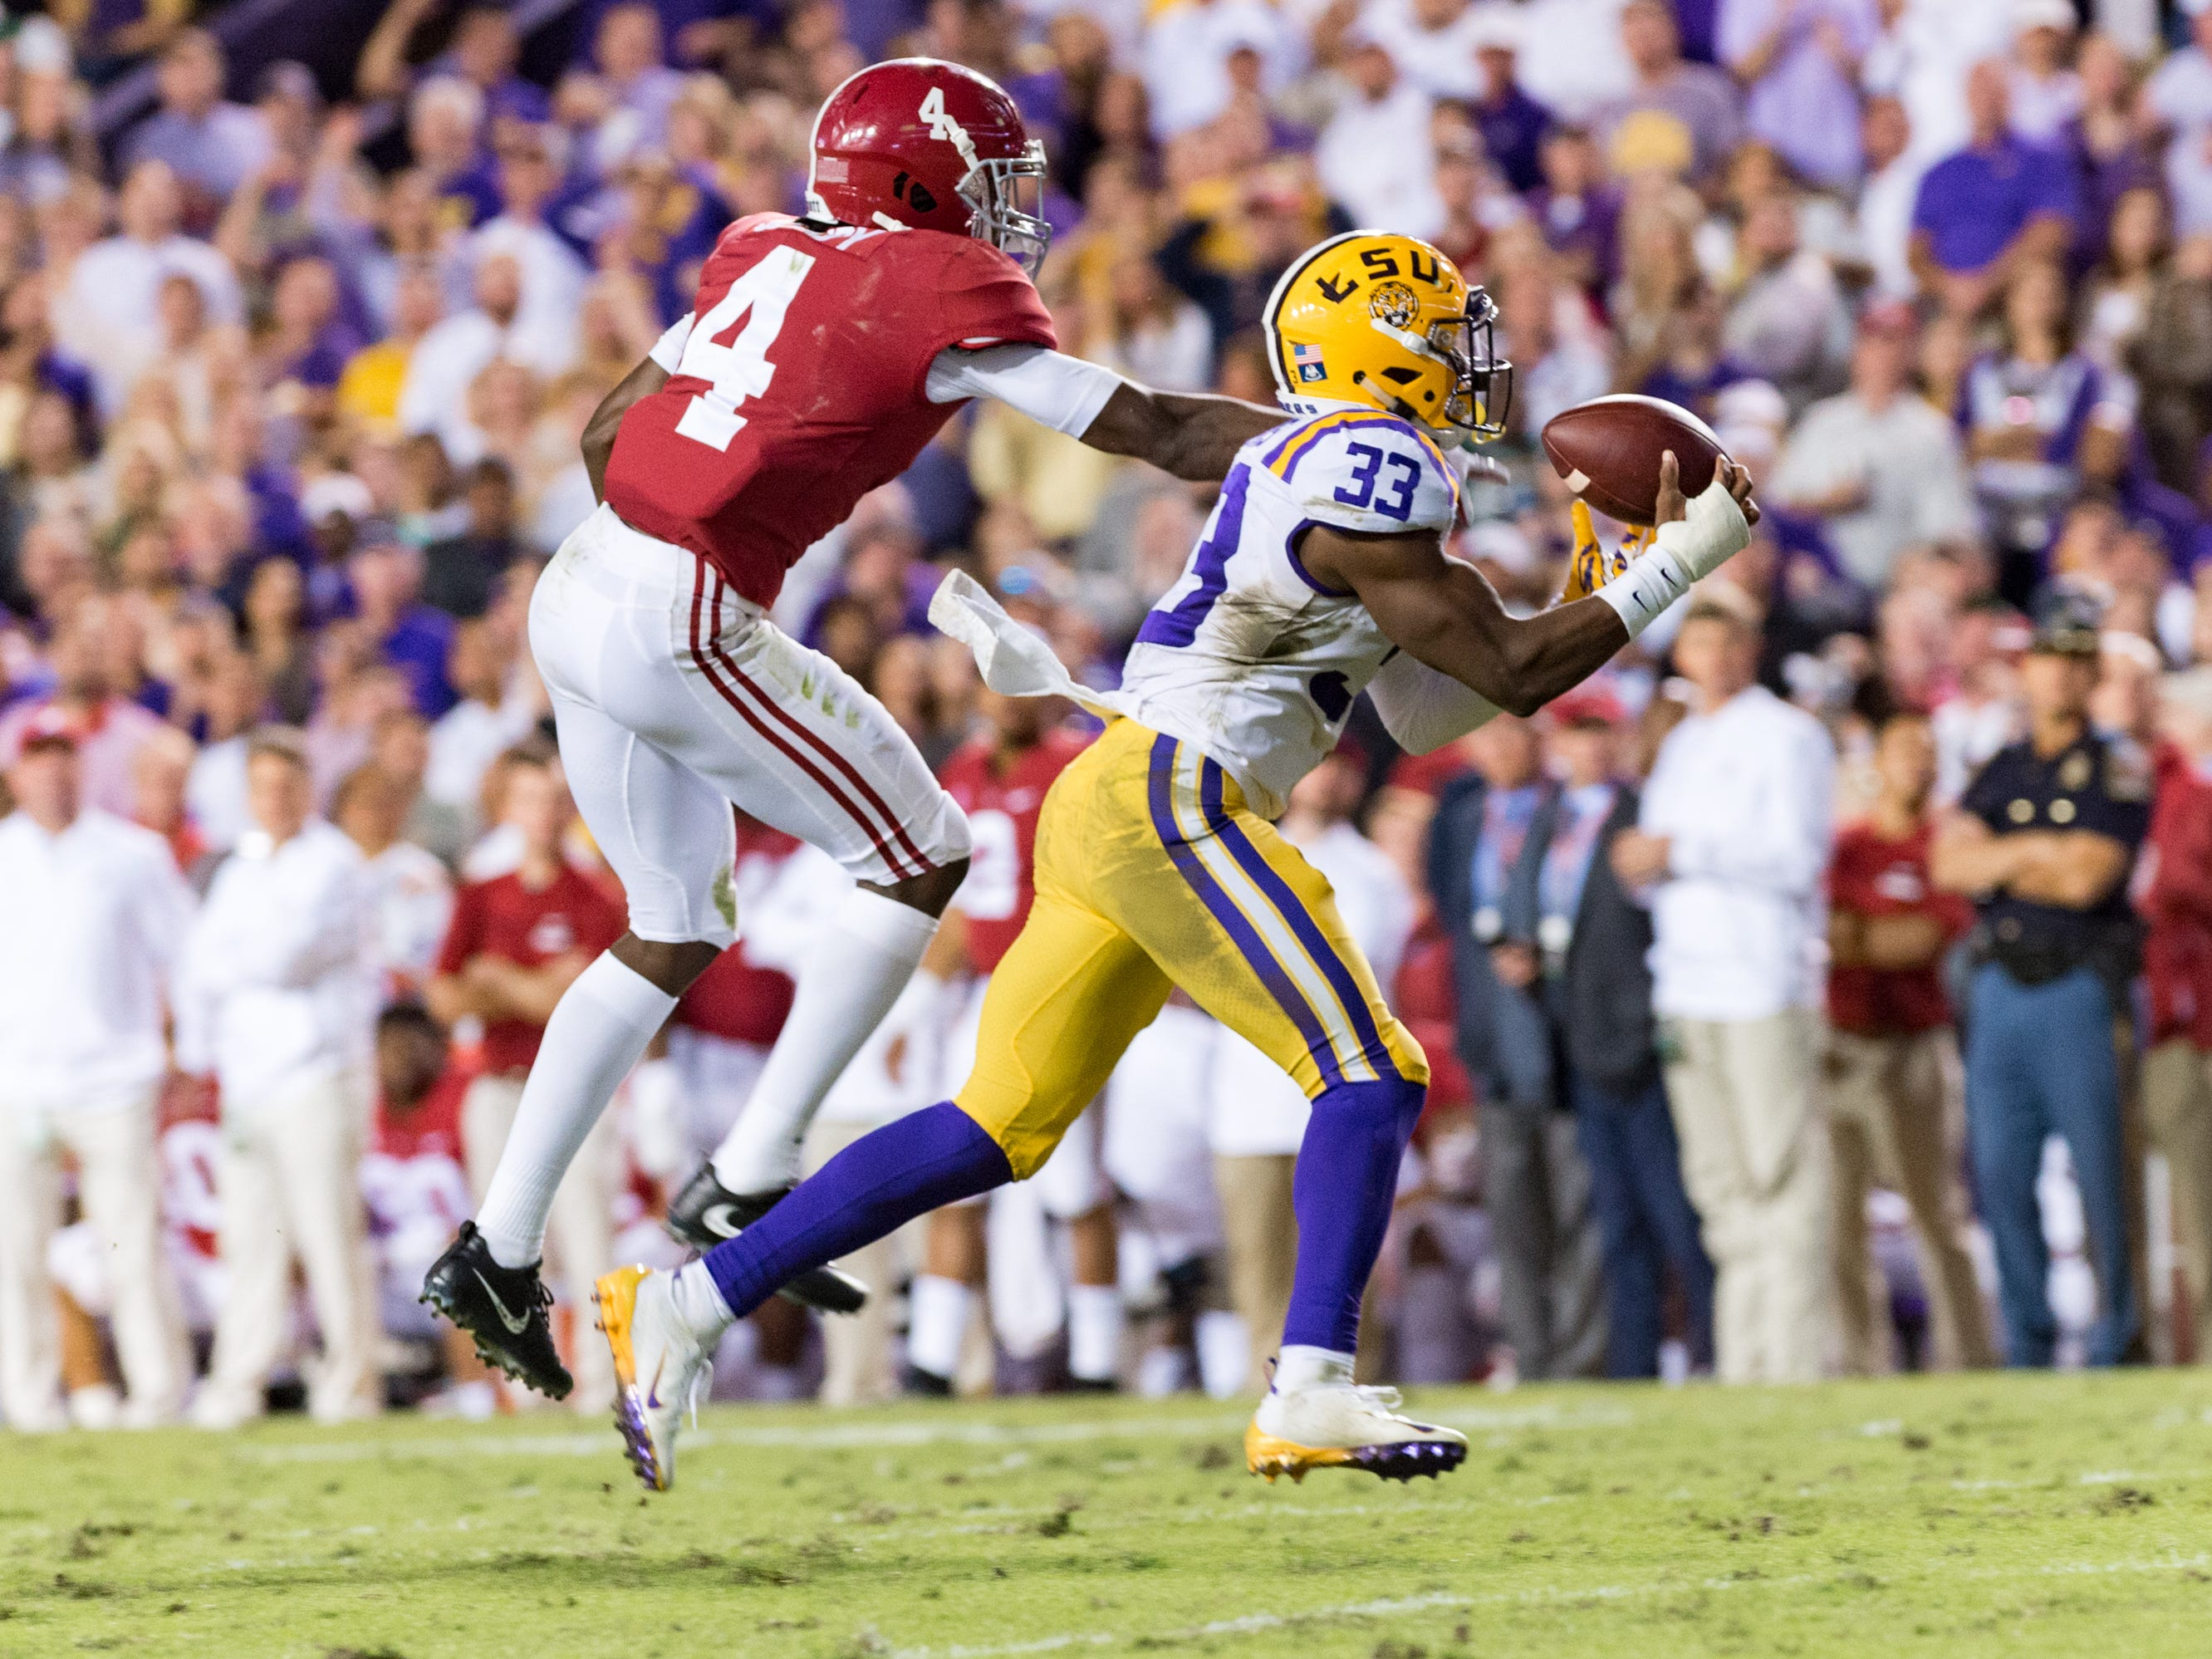 Tigers safety Todd Harris Jr makes an interception as the No. 4-ranked LSU Tigers take on the No. 1  Alabama Crimson Tide in Tiger Stadium Saturday, Nov. 3, 2018.